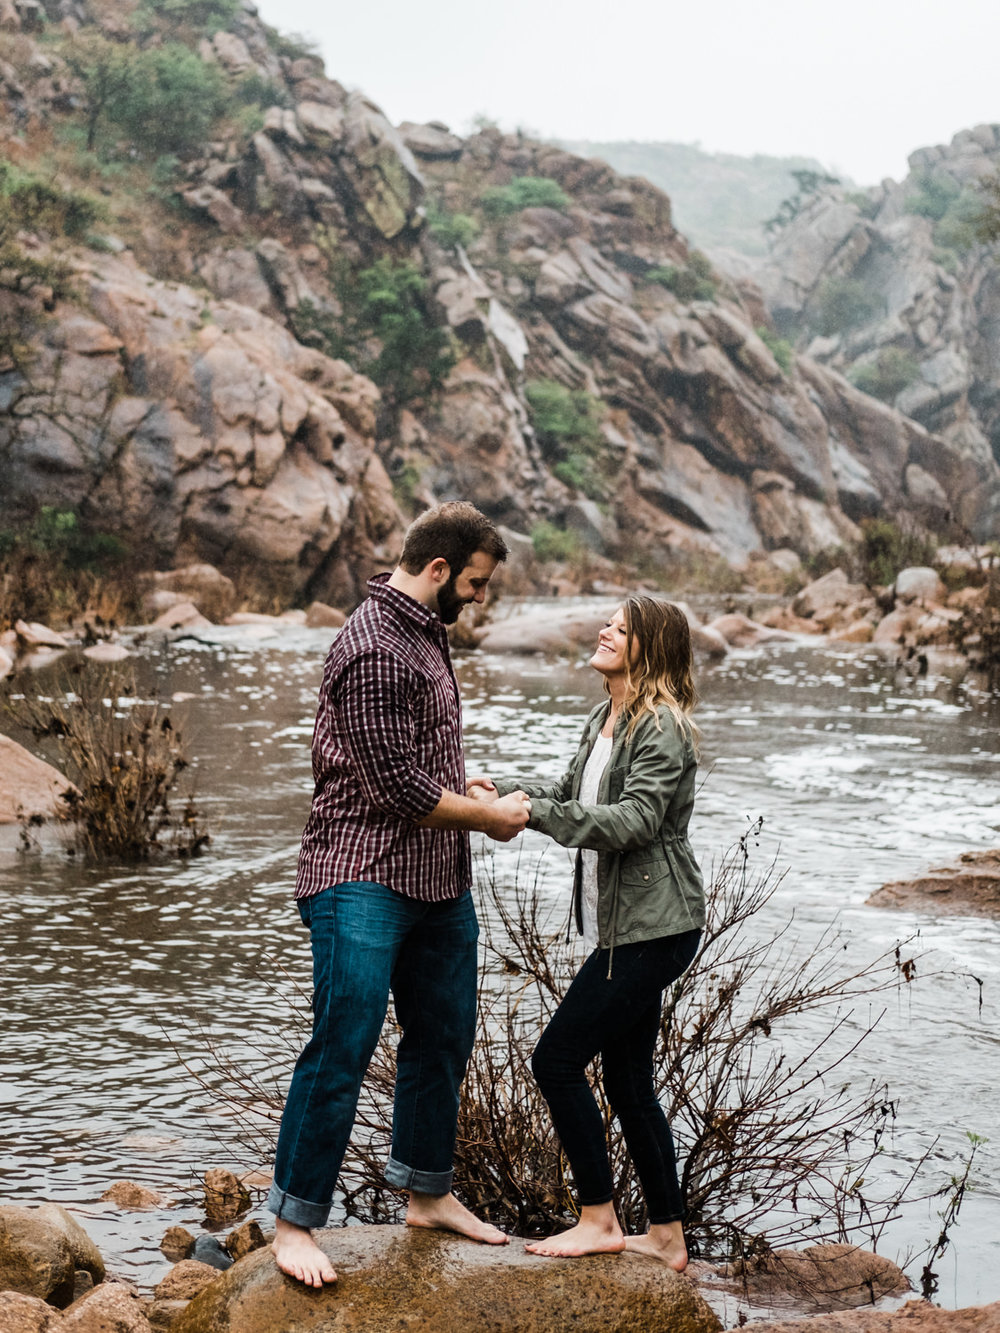 Oklahoma Engagement-Neal Dieker-Oklahoma Wedding Photography-Wichita Mountains-Wichita, Kansas Portrait Photographer-148.jpg